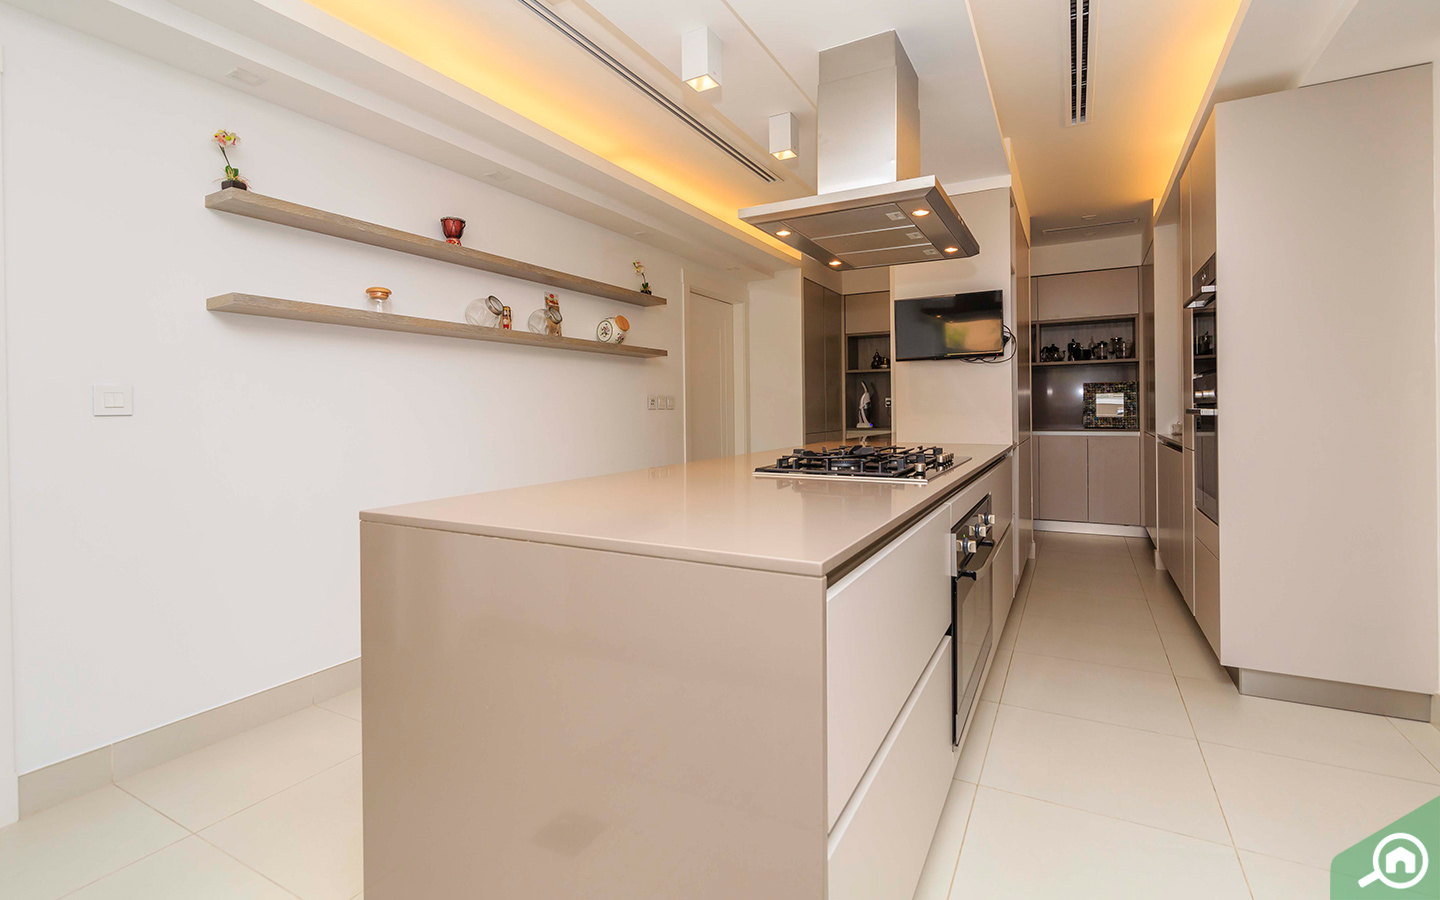 Kitchen with German Fittings and fixtures